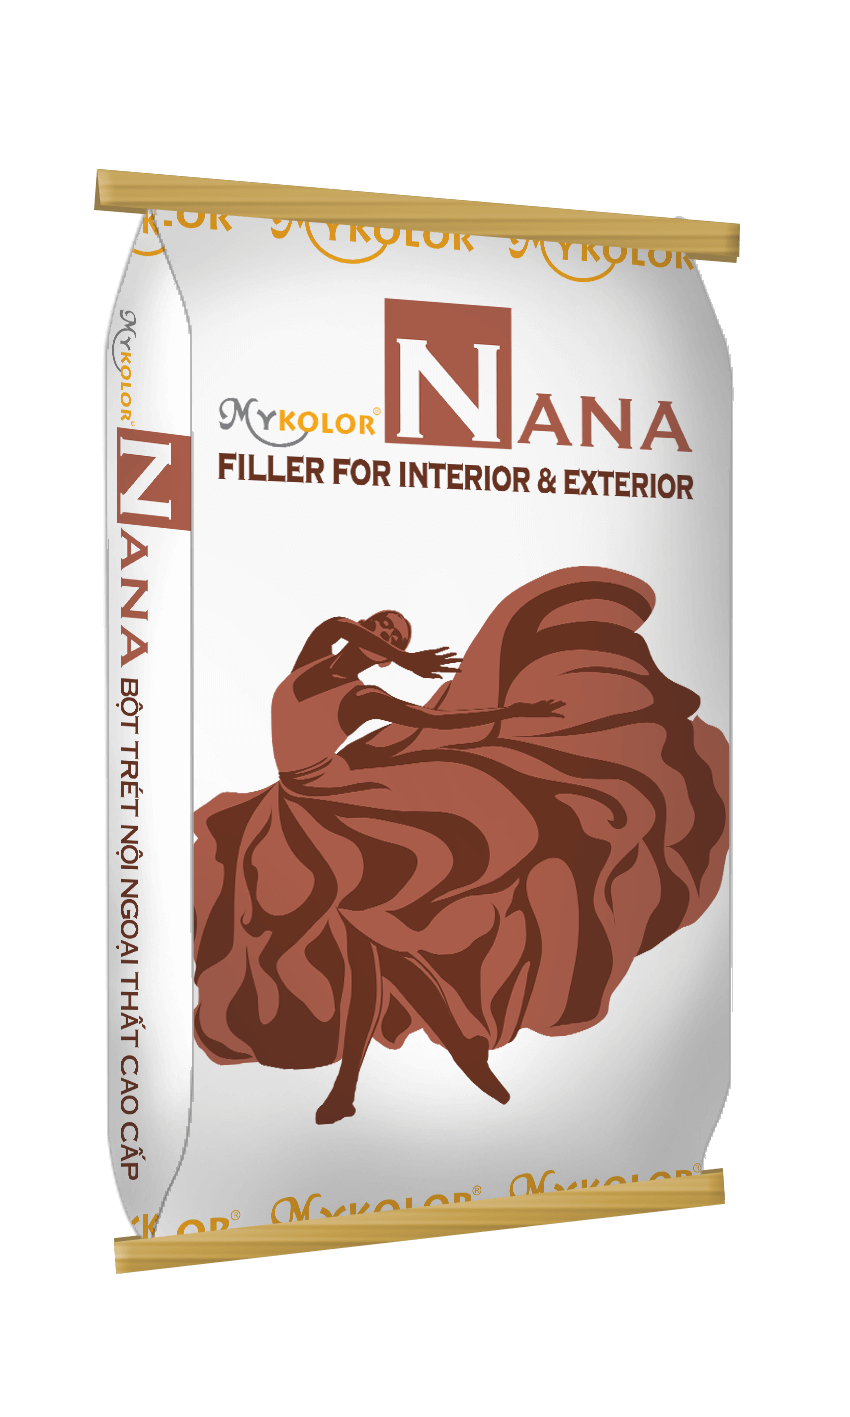 MYKOLOR NANA | FILLER | FOR INTERIOR & EXTERIOR